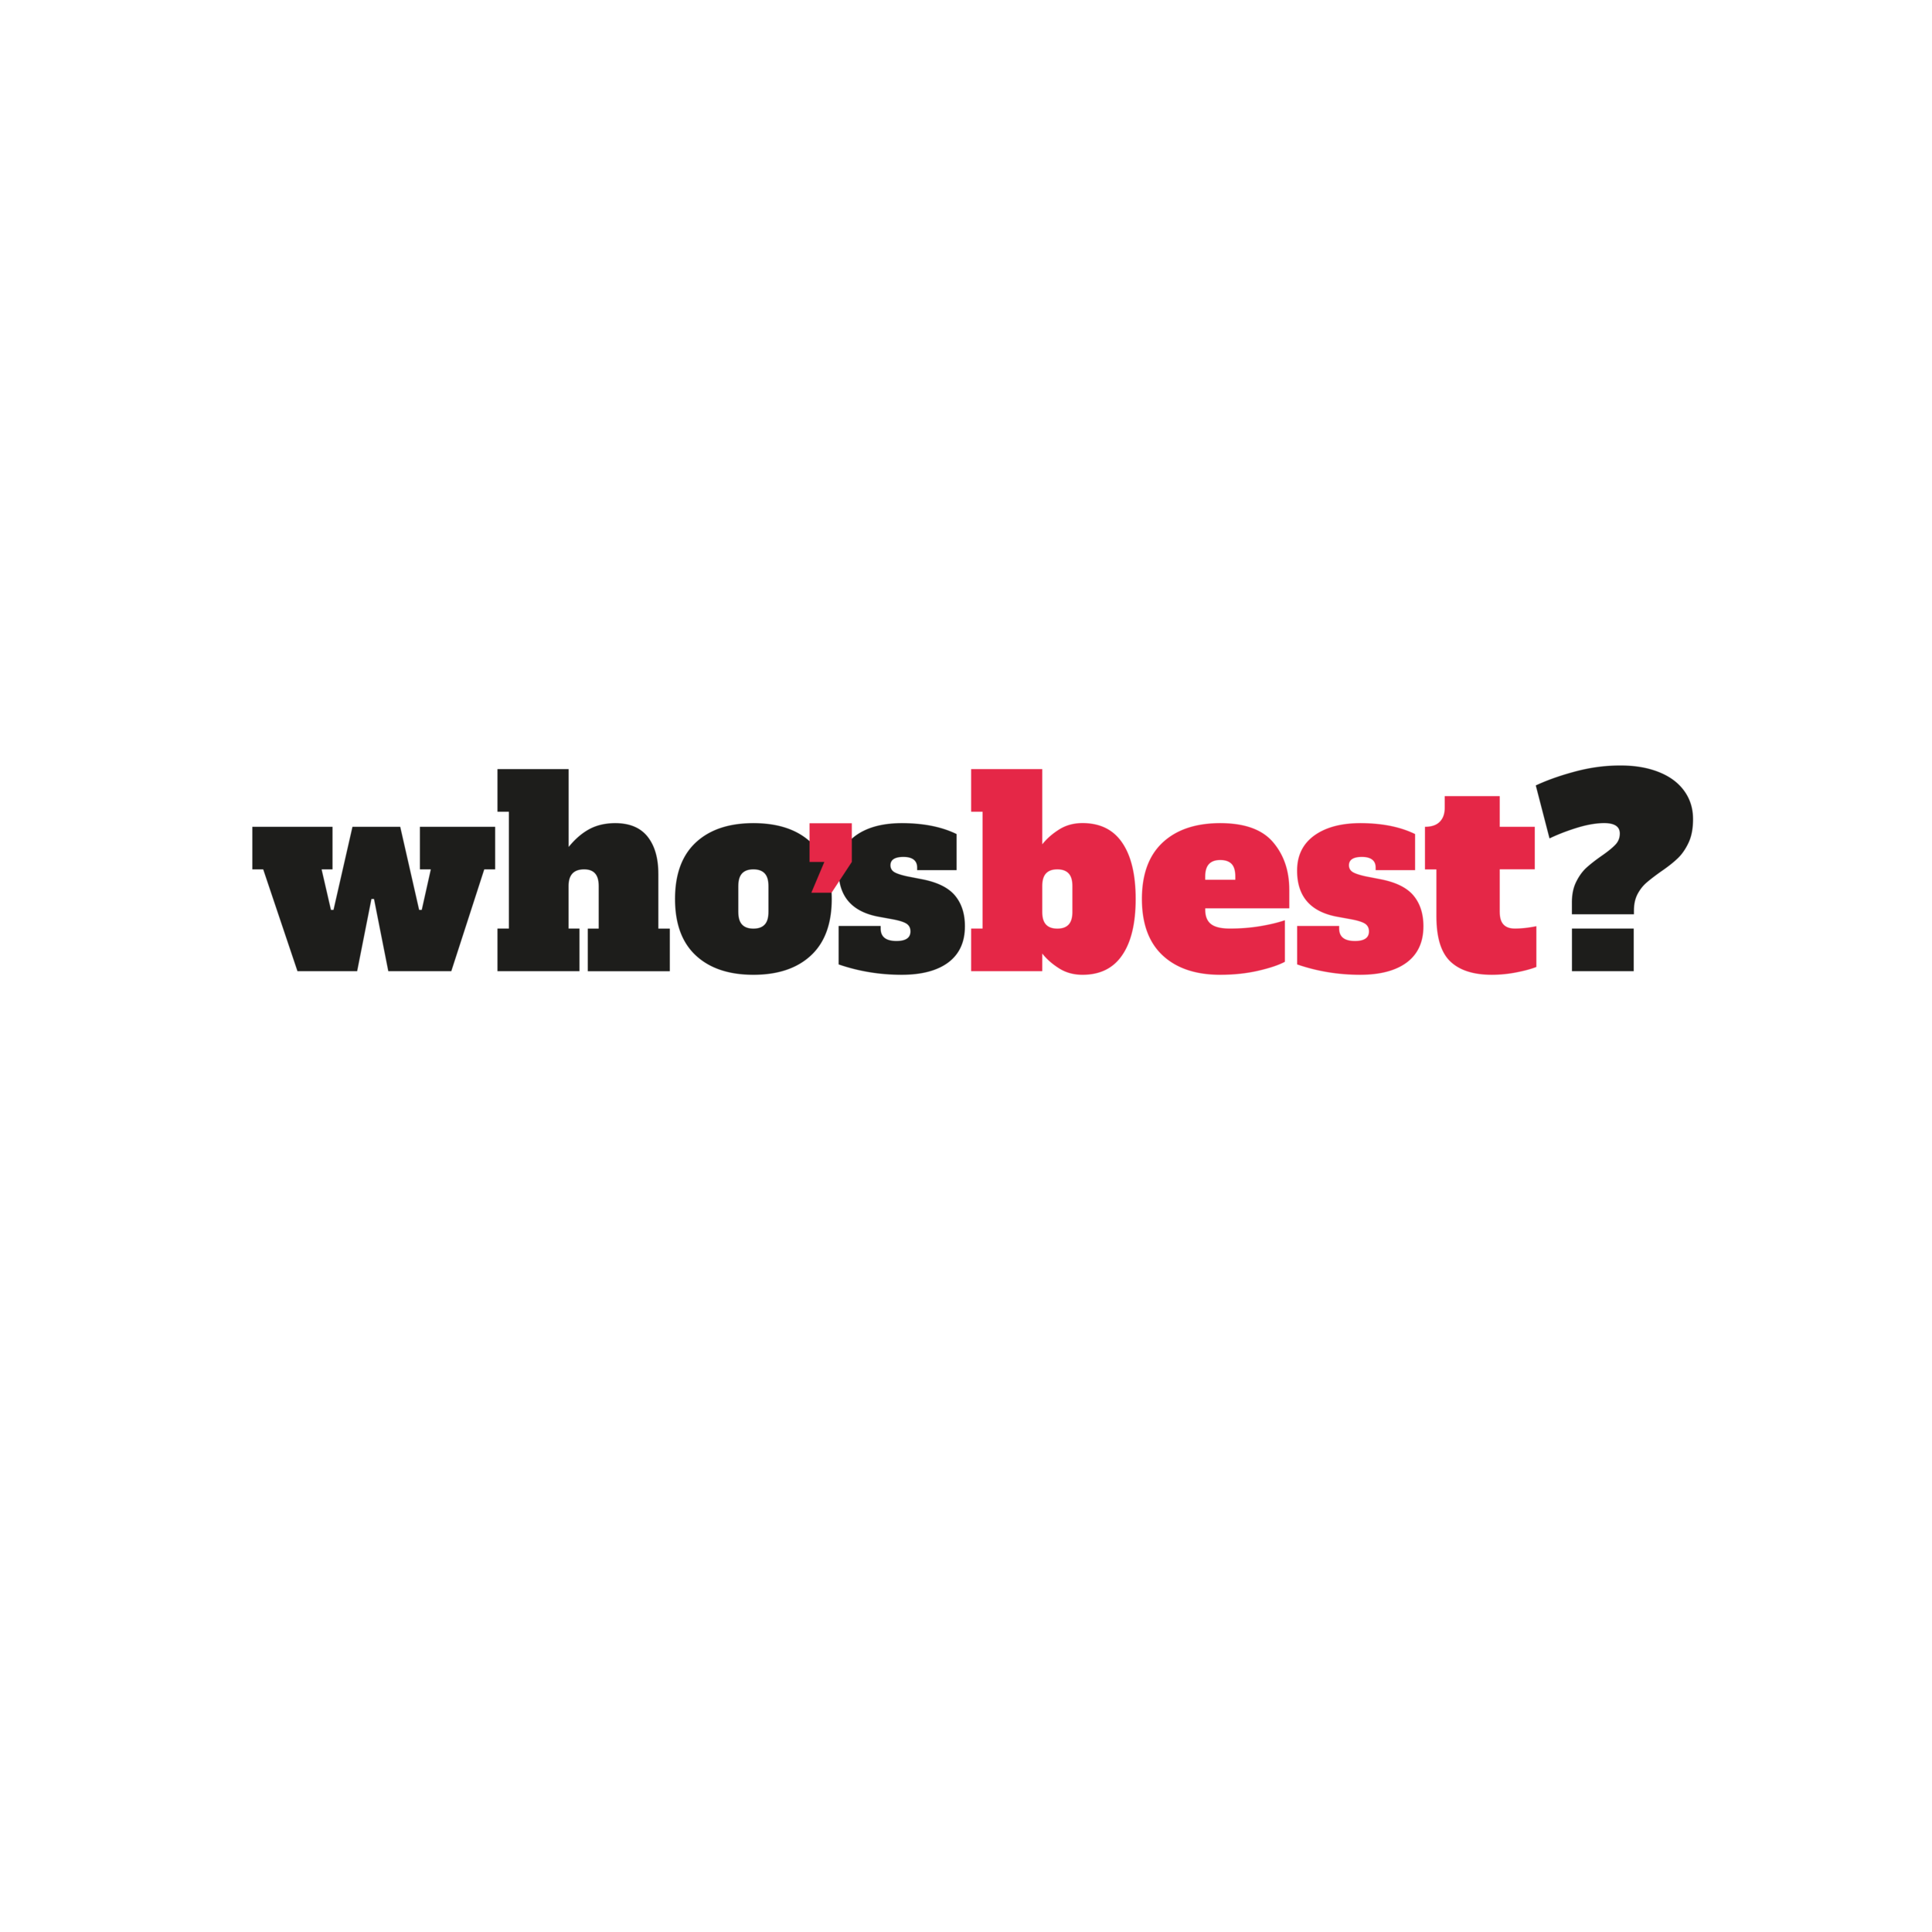 who'sbest on white.png